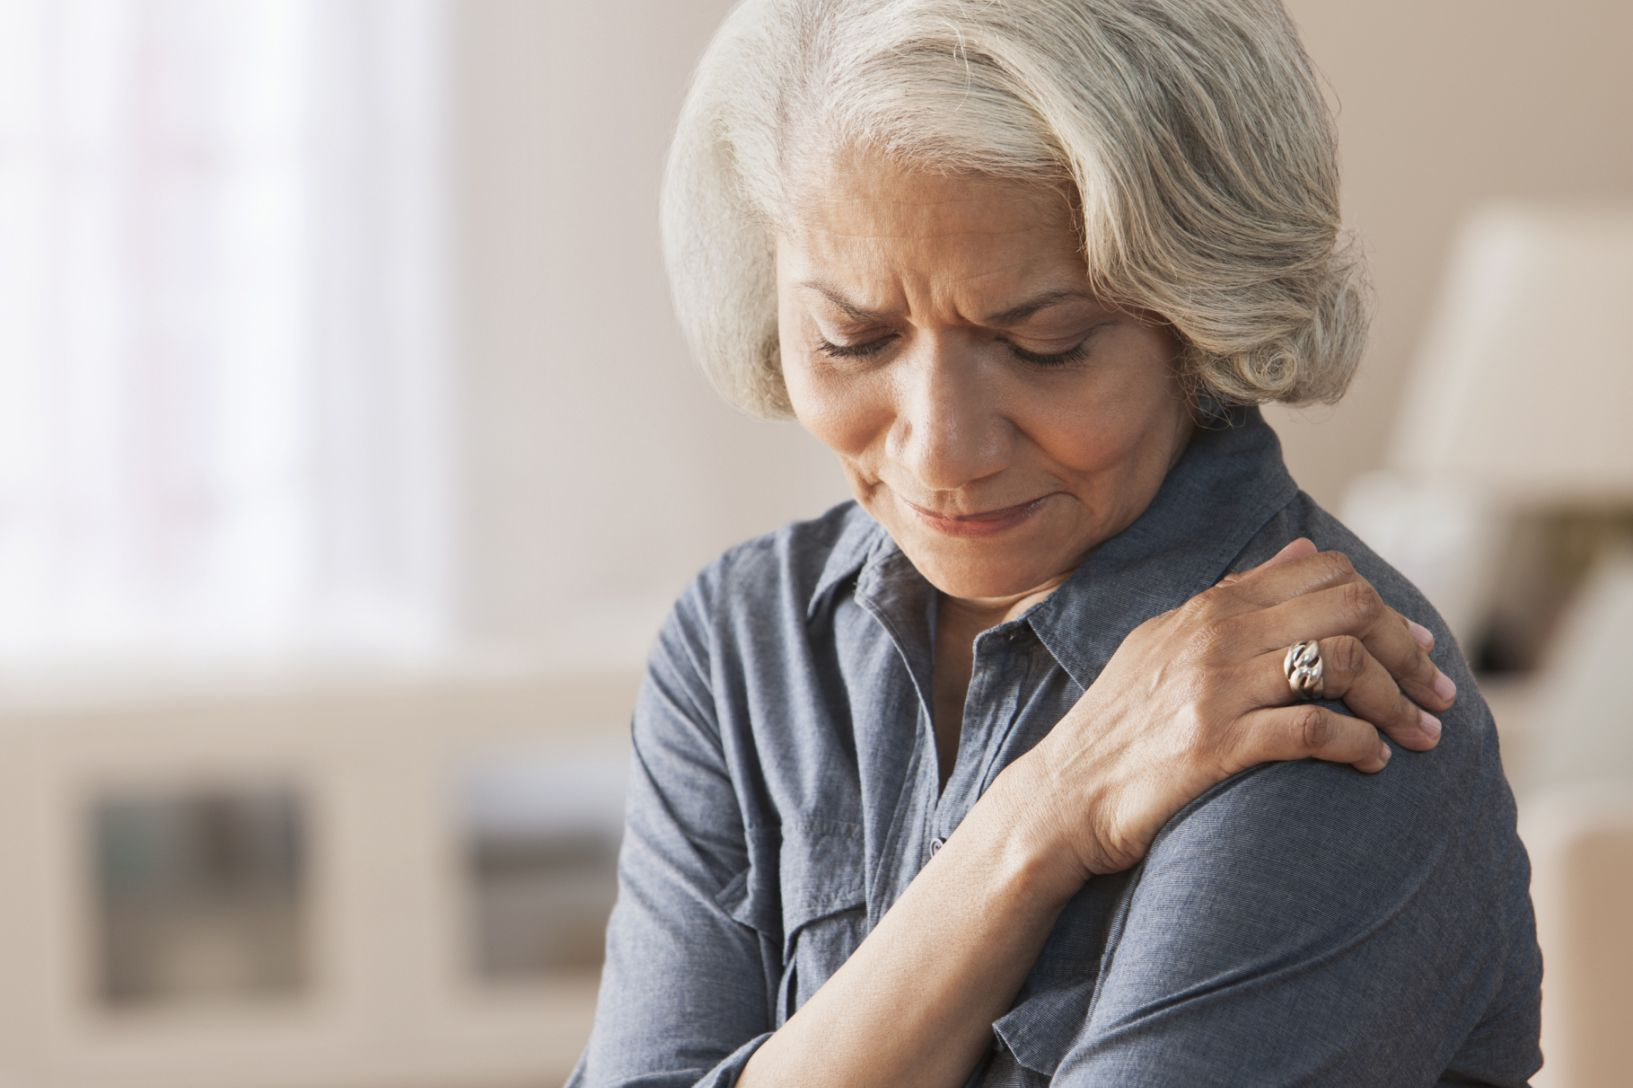 Signs And Symptoms That You May Have Arthritis